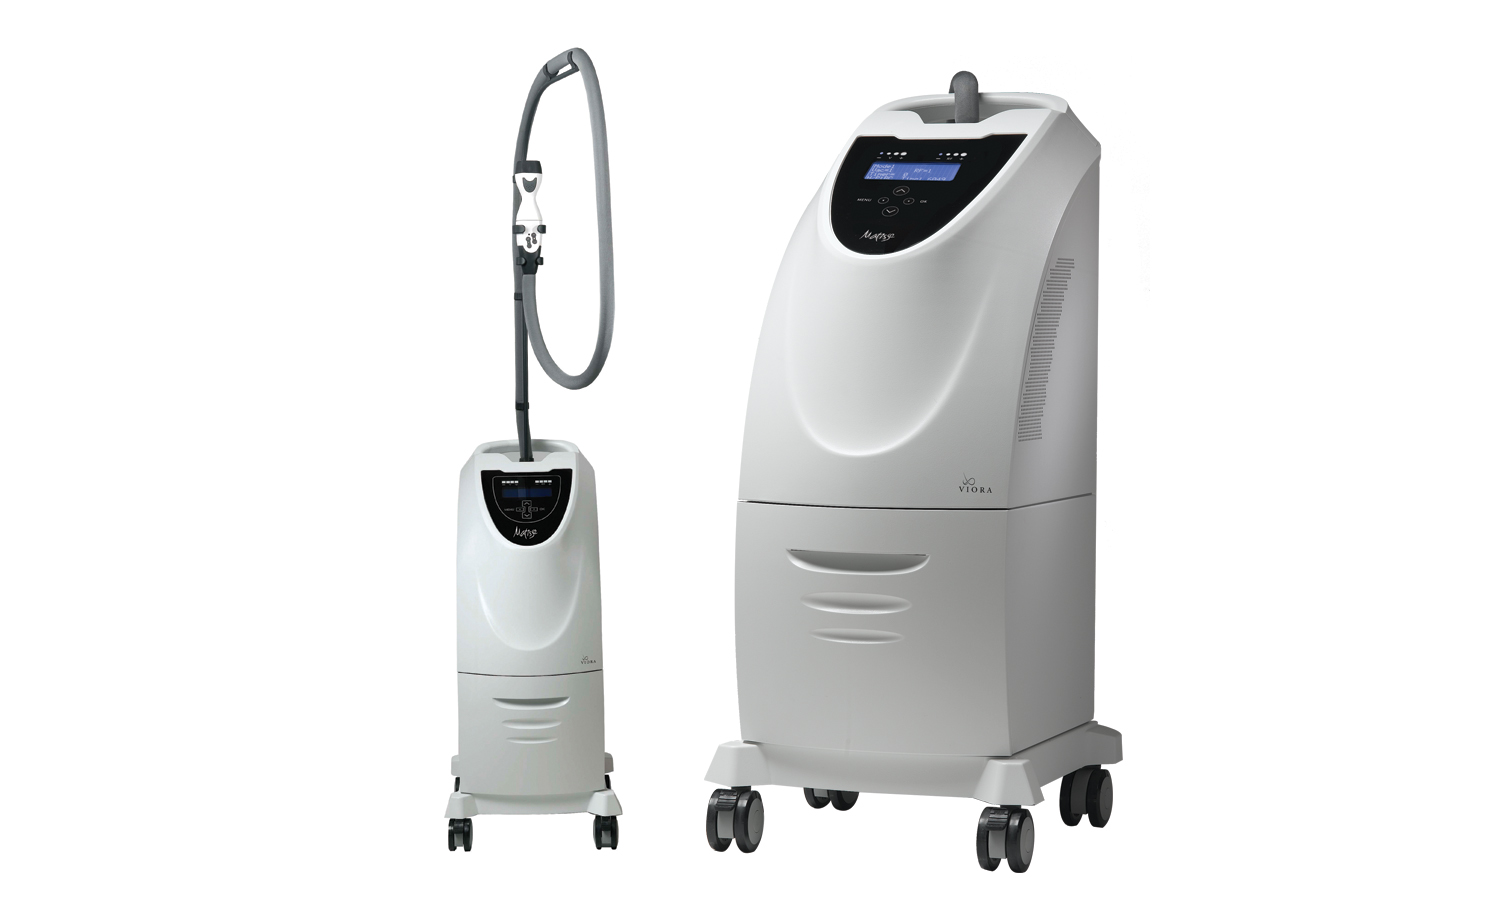 Matisse and Reaction Radiofrequency System